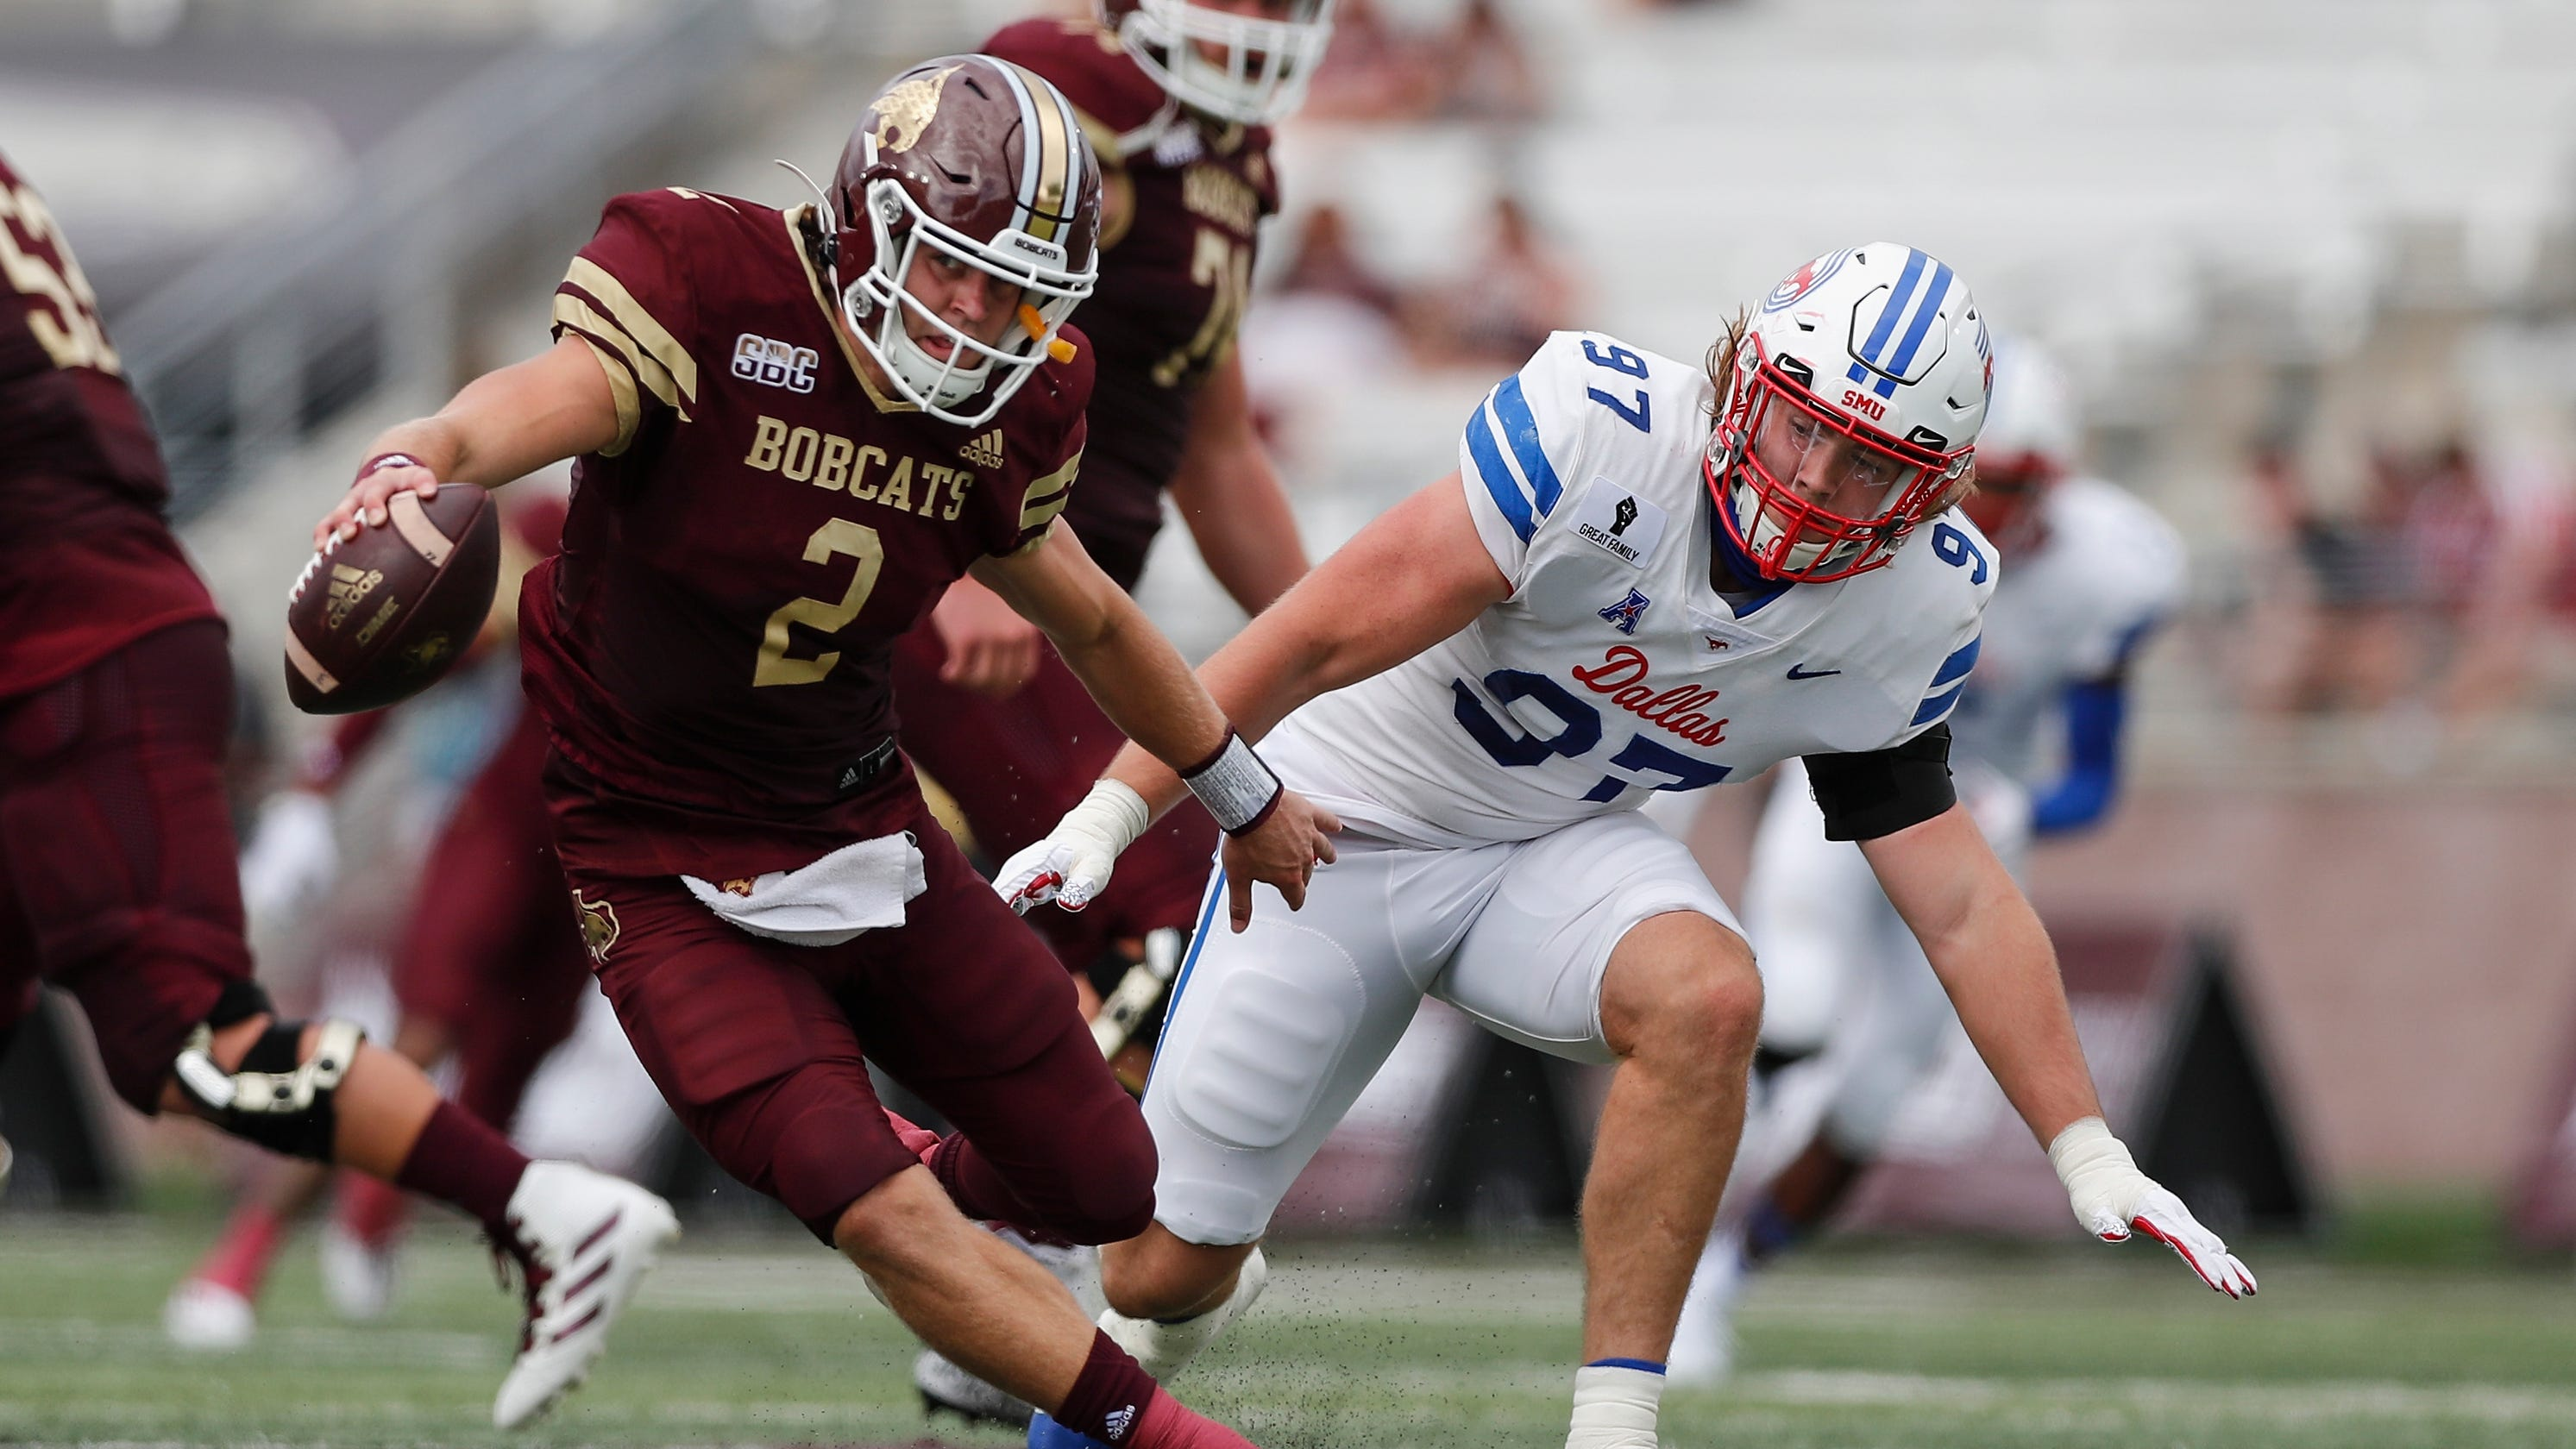 SMU tops undermanned Texas State, who played with no tight ends due to COVID-19 contact tracing